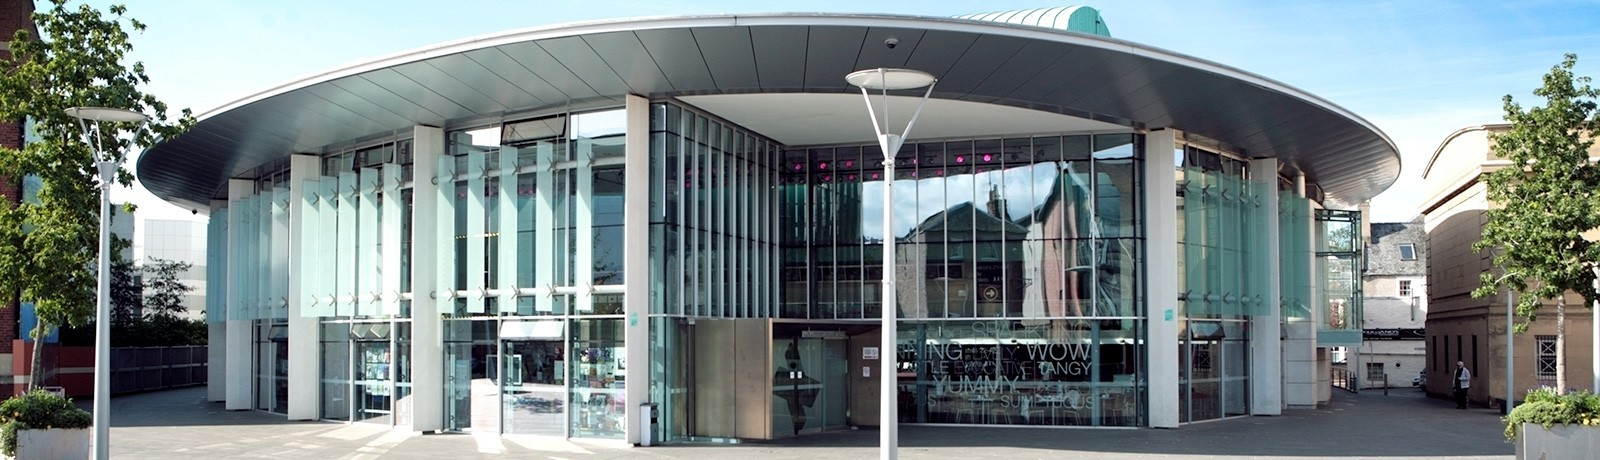 Perth Concert Hall Image